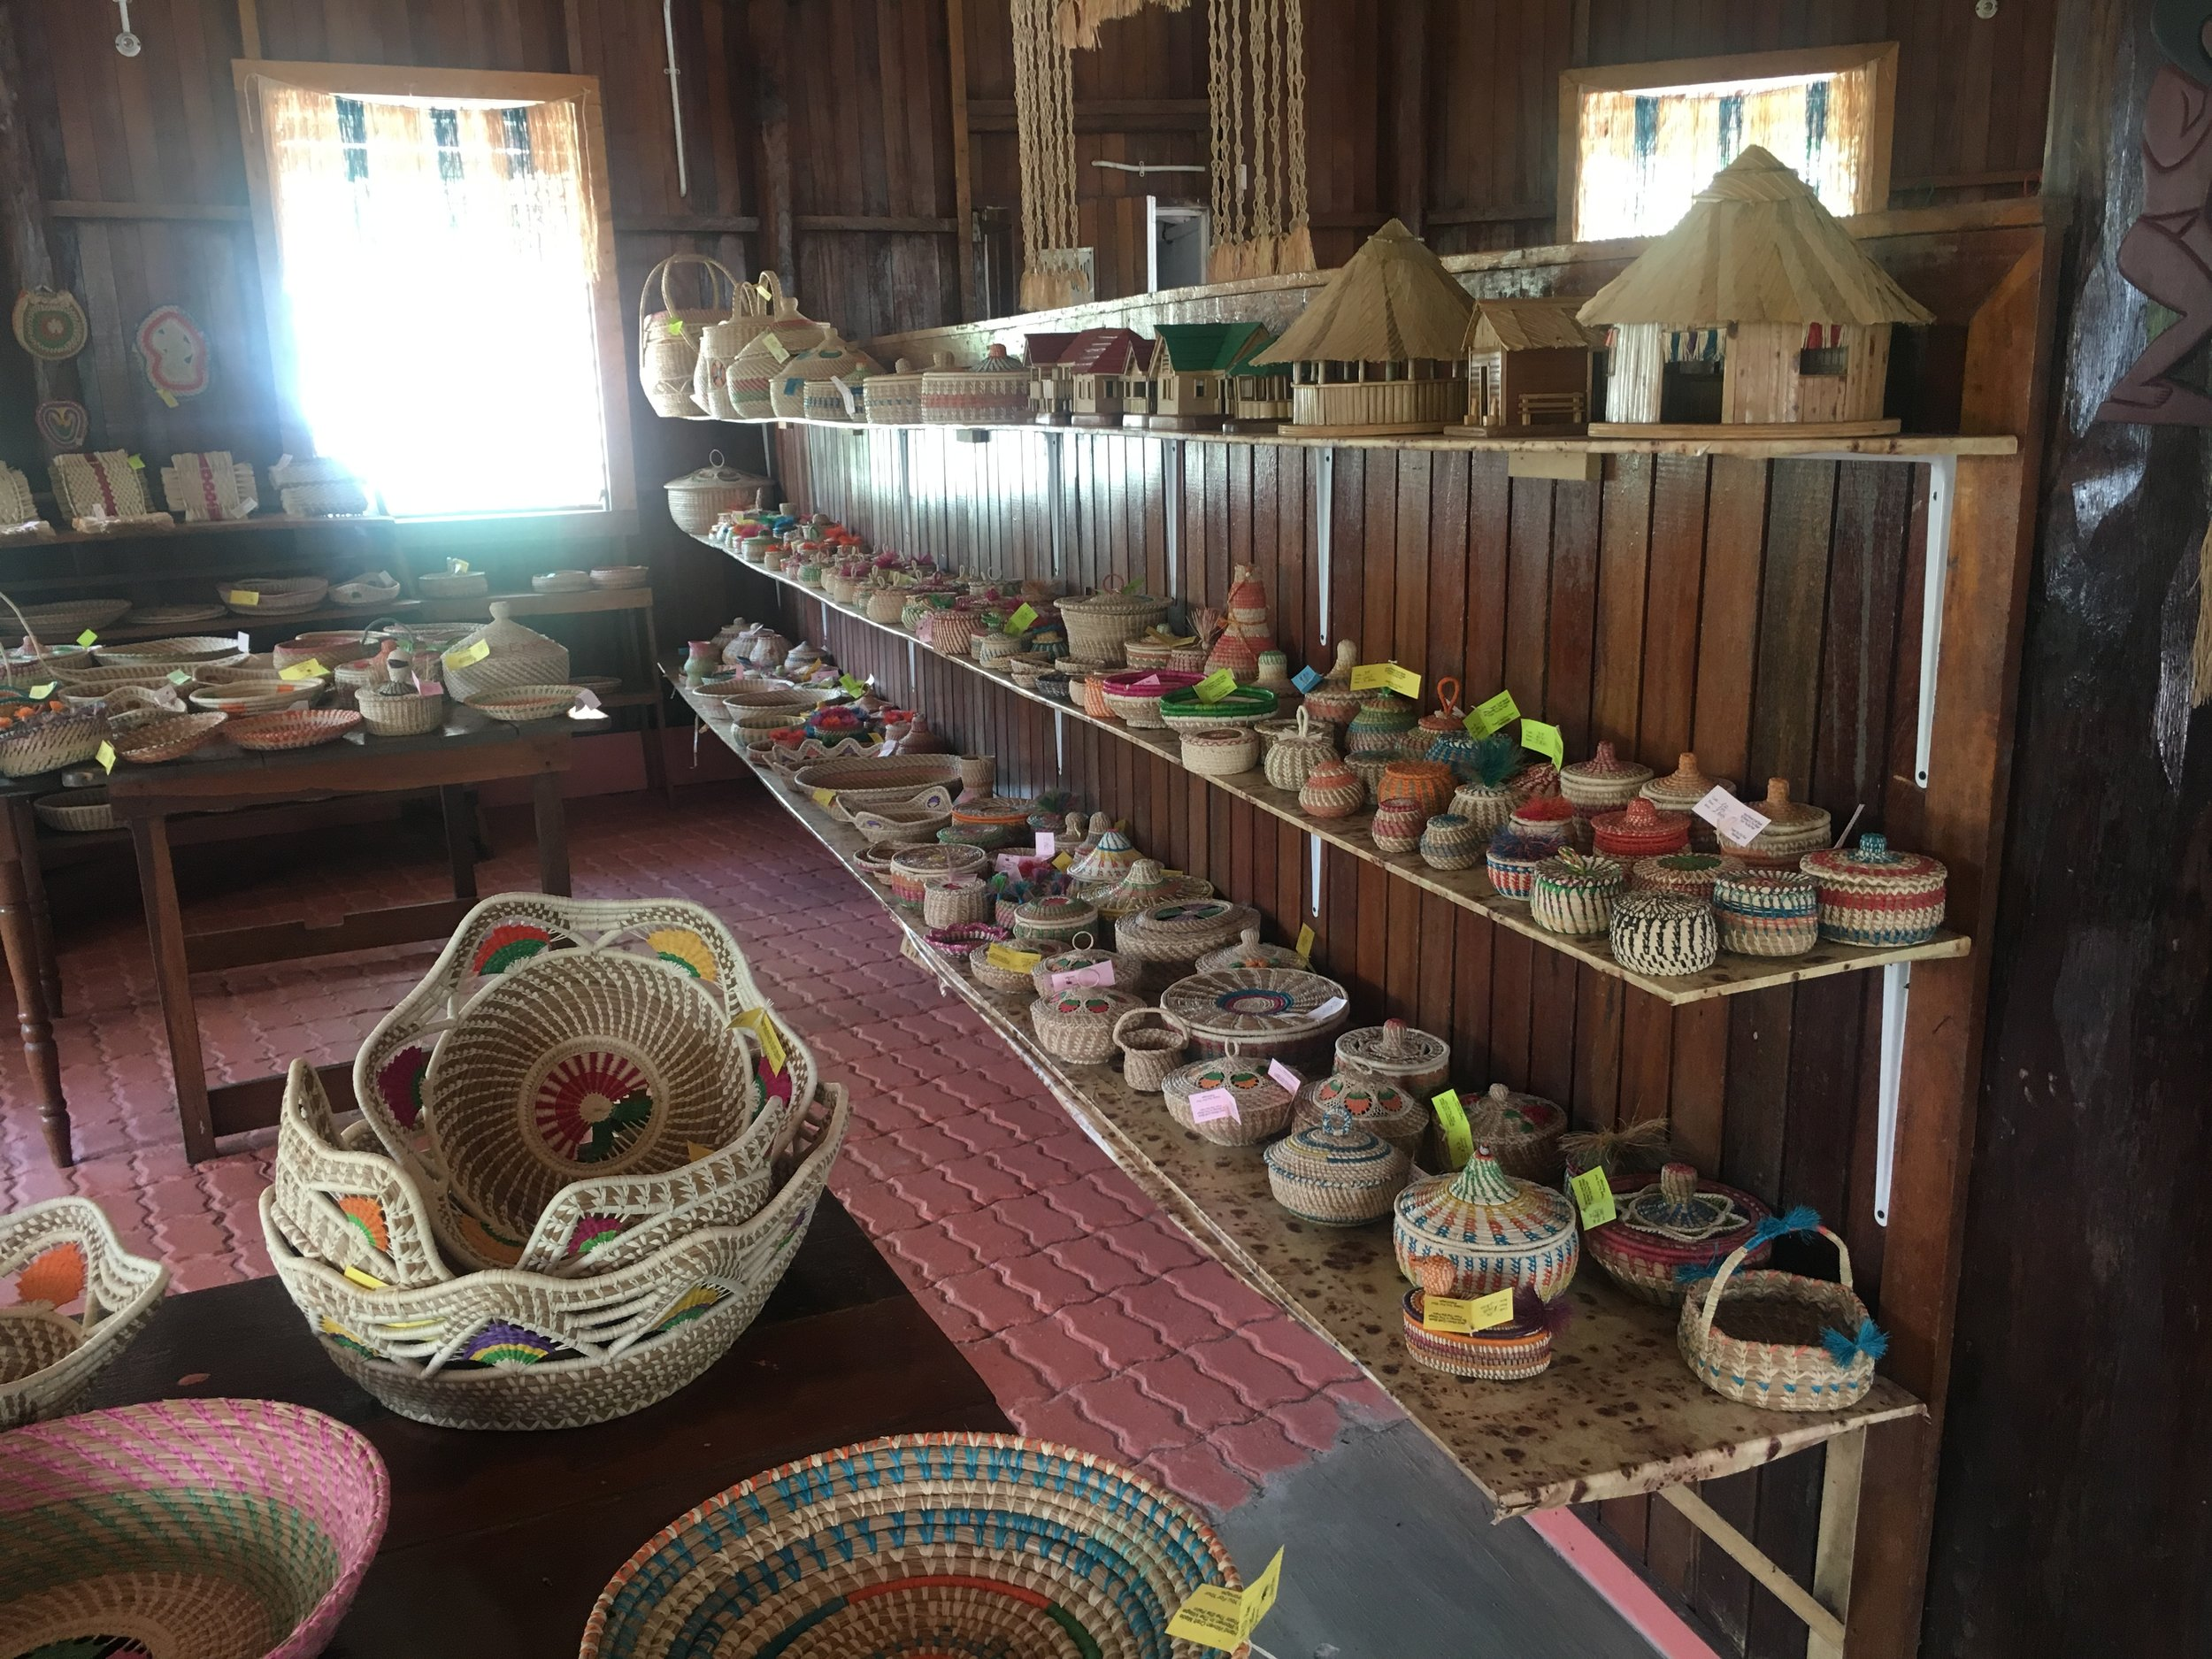 Handmade crafts from Arawak Amerindians are on display around the city and surrounding areas